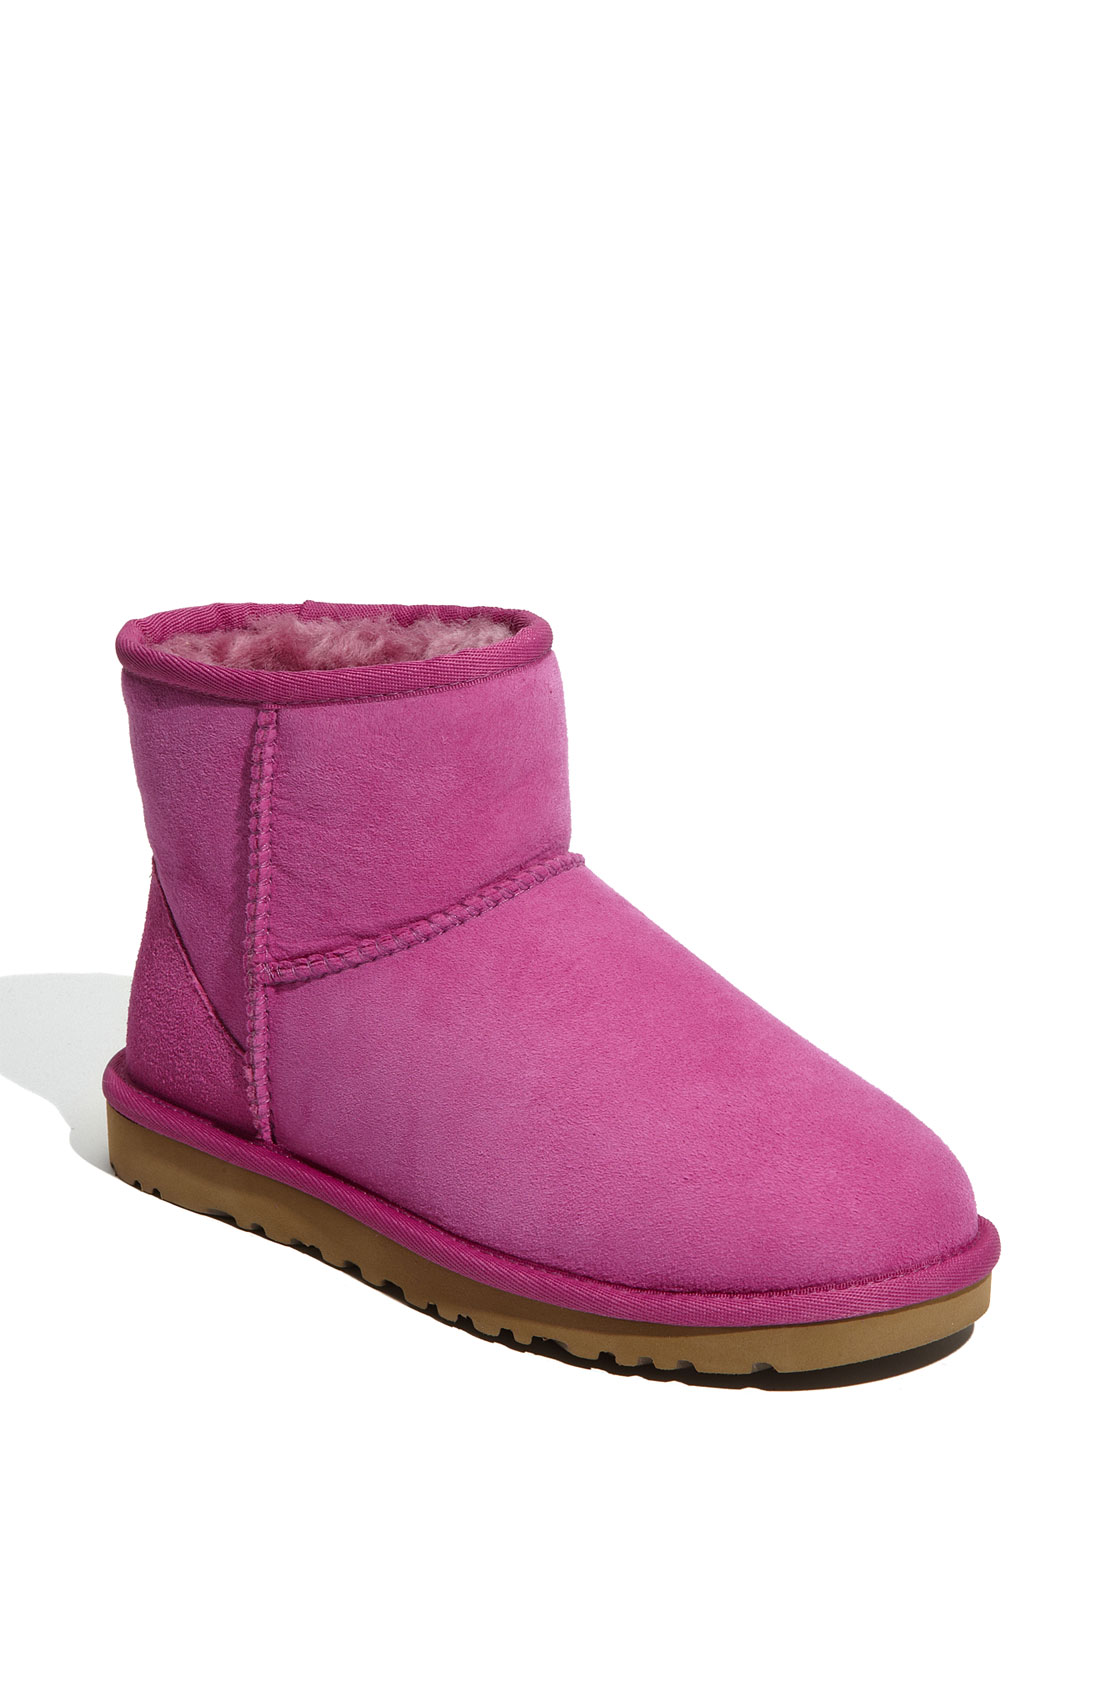 ugg classic mini boot women in pink cactus flower lyst. Black Bedroom Furniture Sets. Home Design Ideas